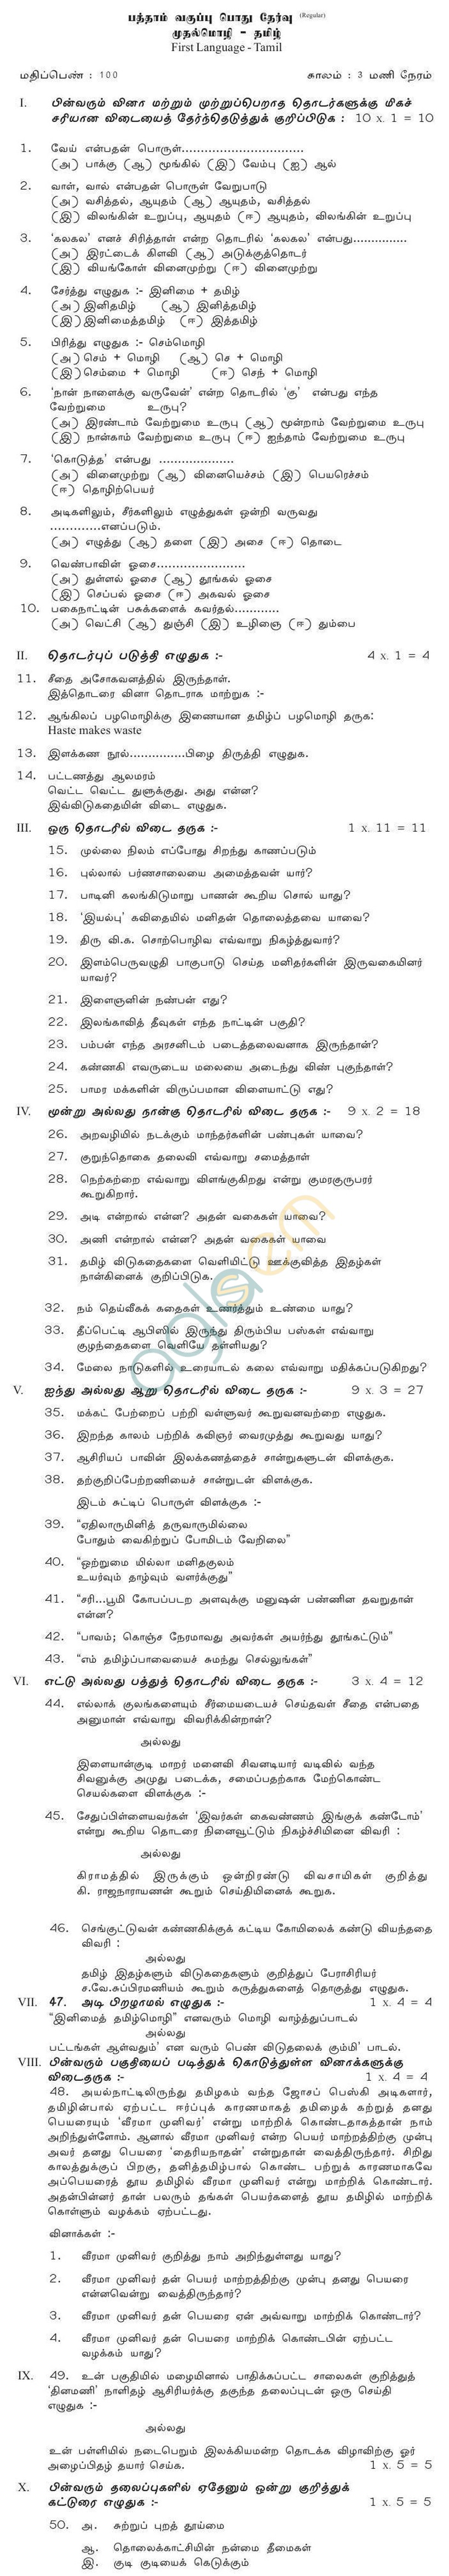 Karnataka Board SSLC Model Question Papers 2015 for Tamil